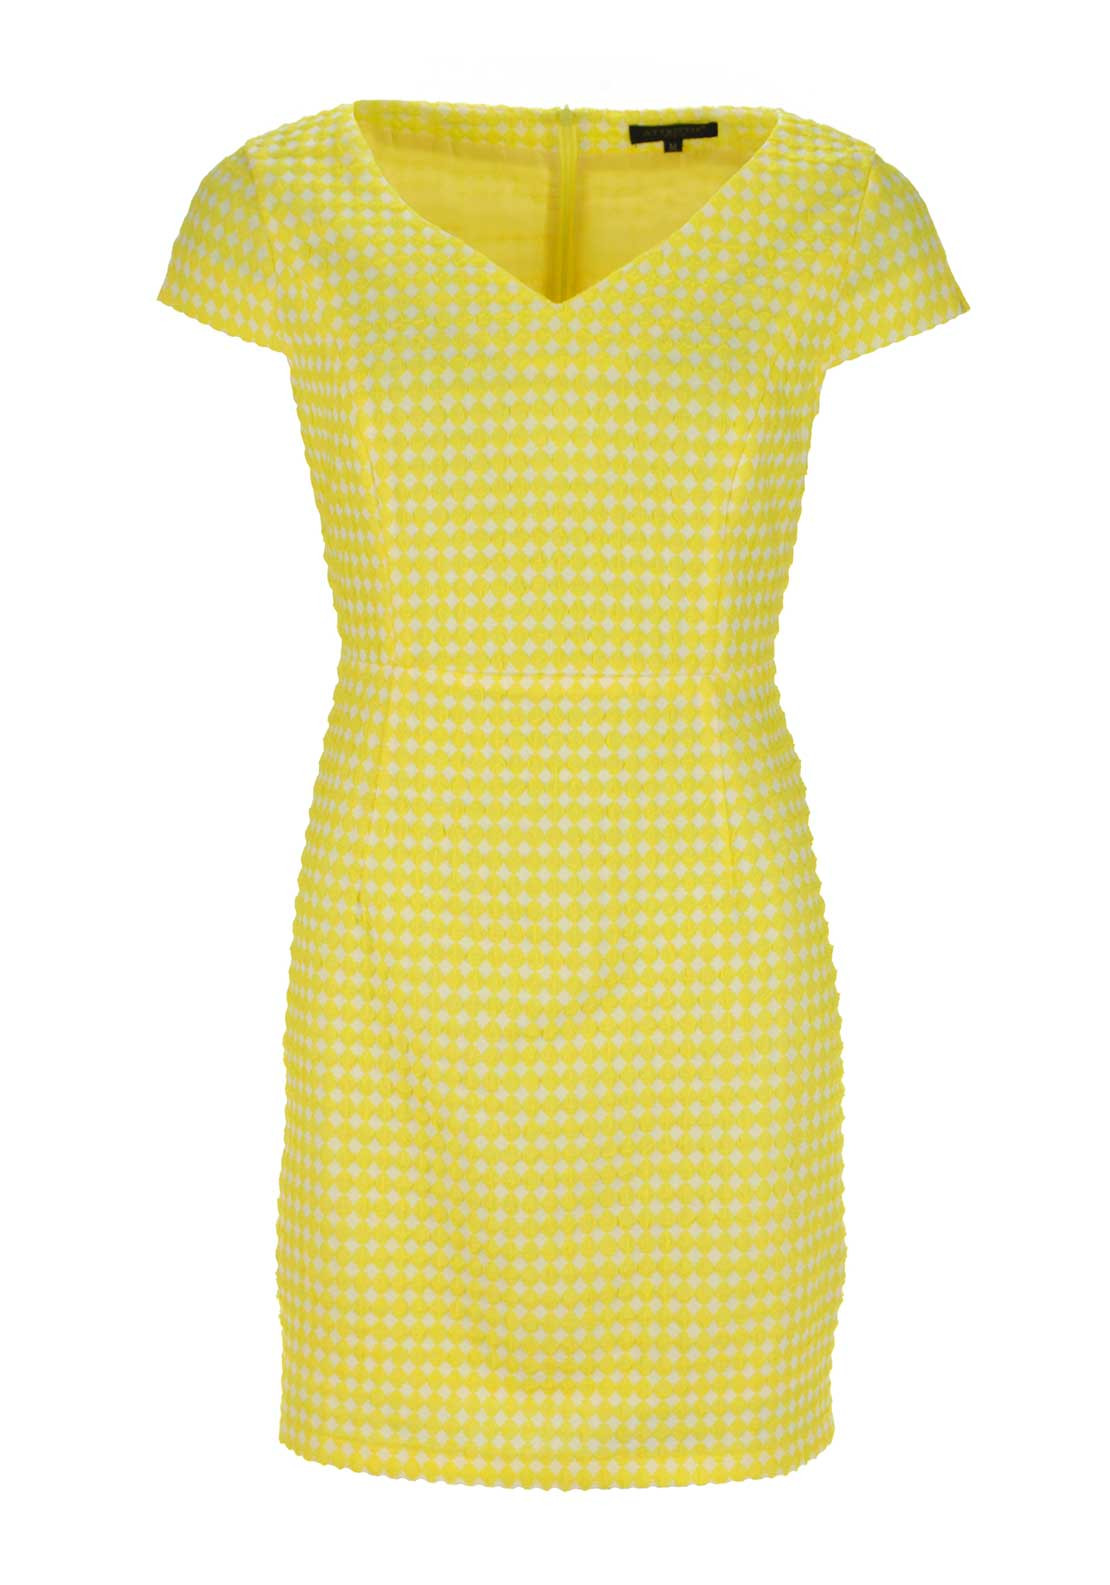 Boutique Graphic Print V Neck Shift Dress, Yellow and White